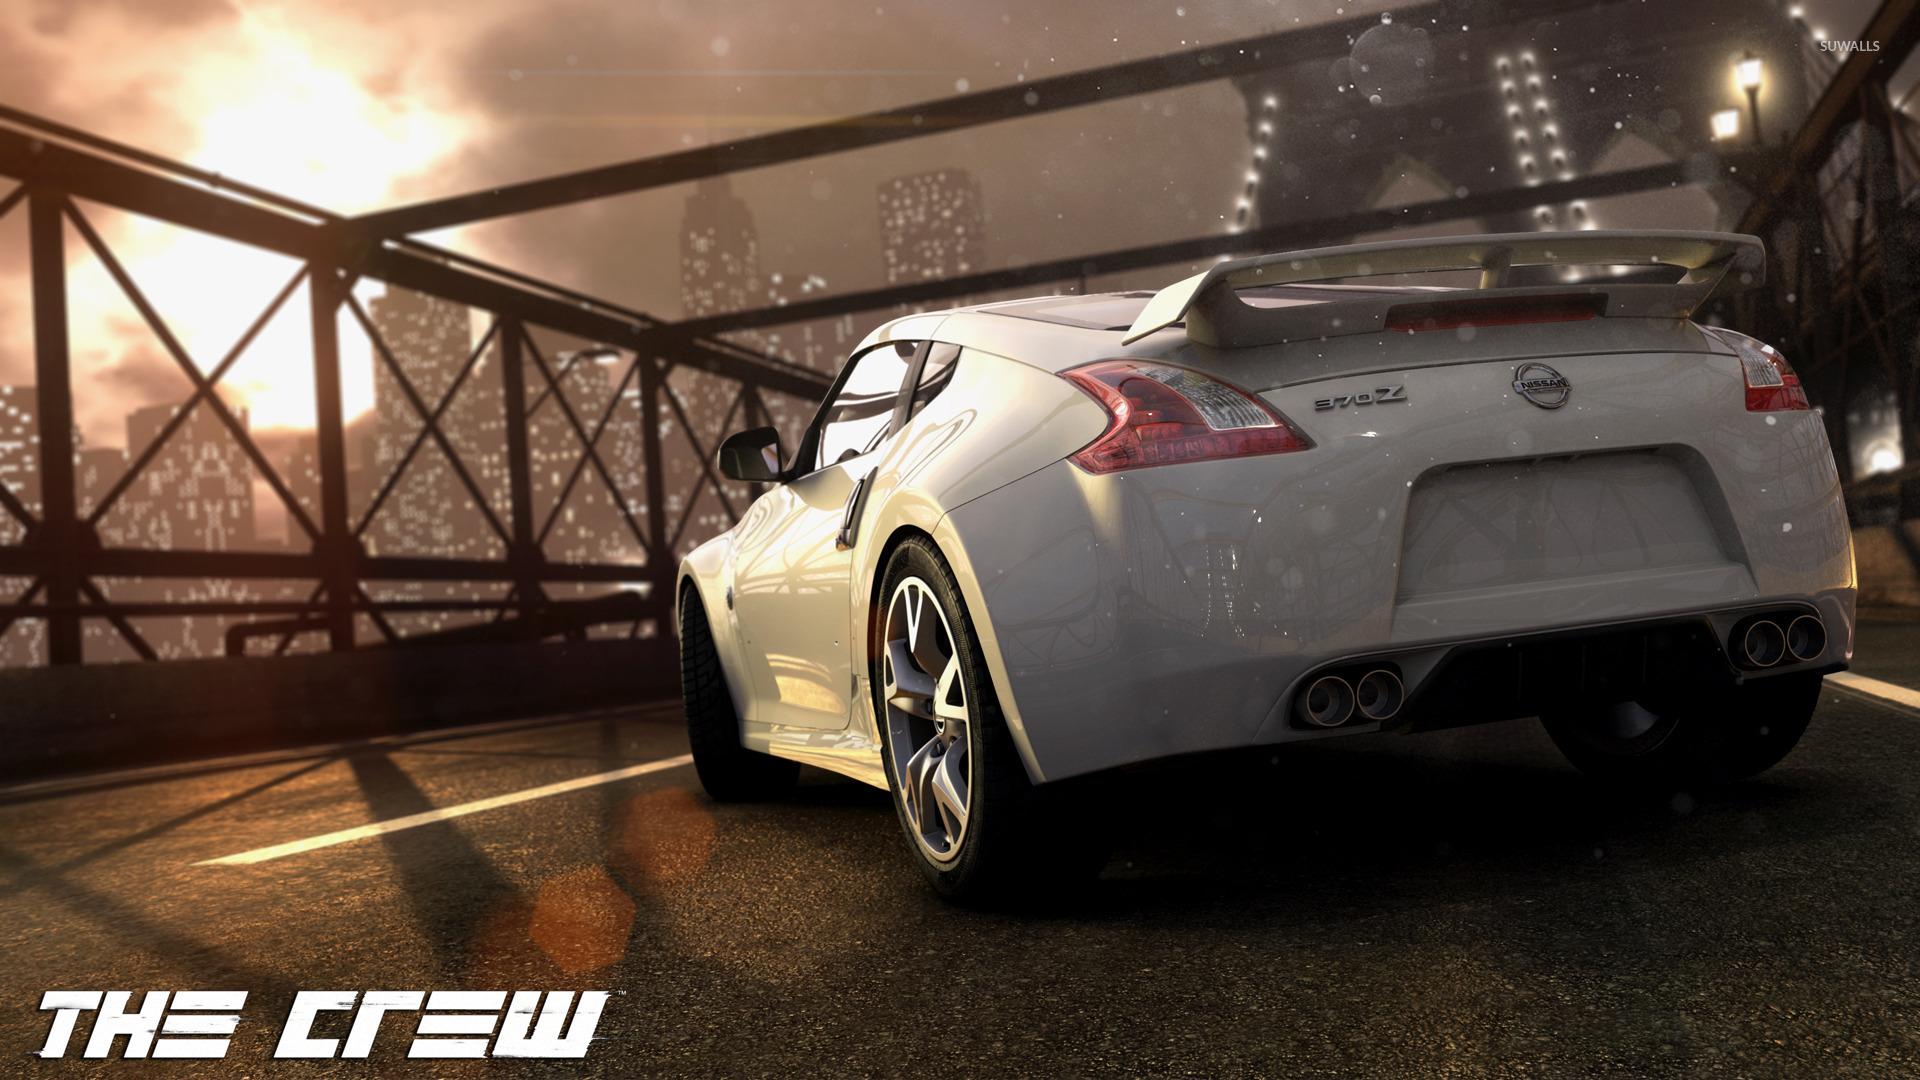 Nissan 370Z The Crew Wallpaper Game Wallpapers 26820